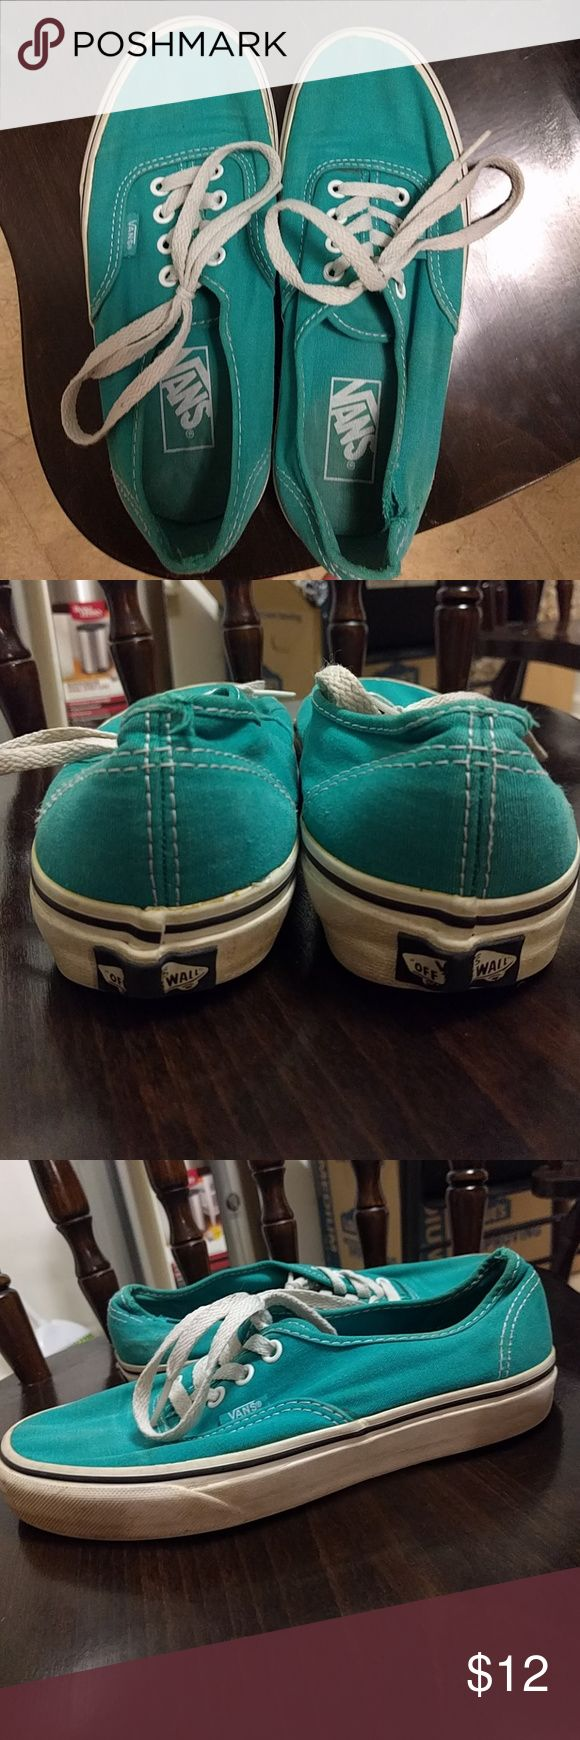 Teal Vans Used pair of Vans, slight wear and tear but still in great shape! Mens size 6, women's size 7.5 Vans Shoes Sneakers